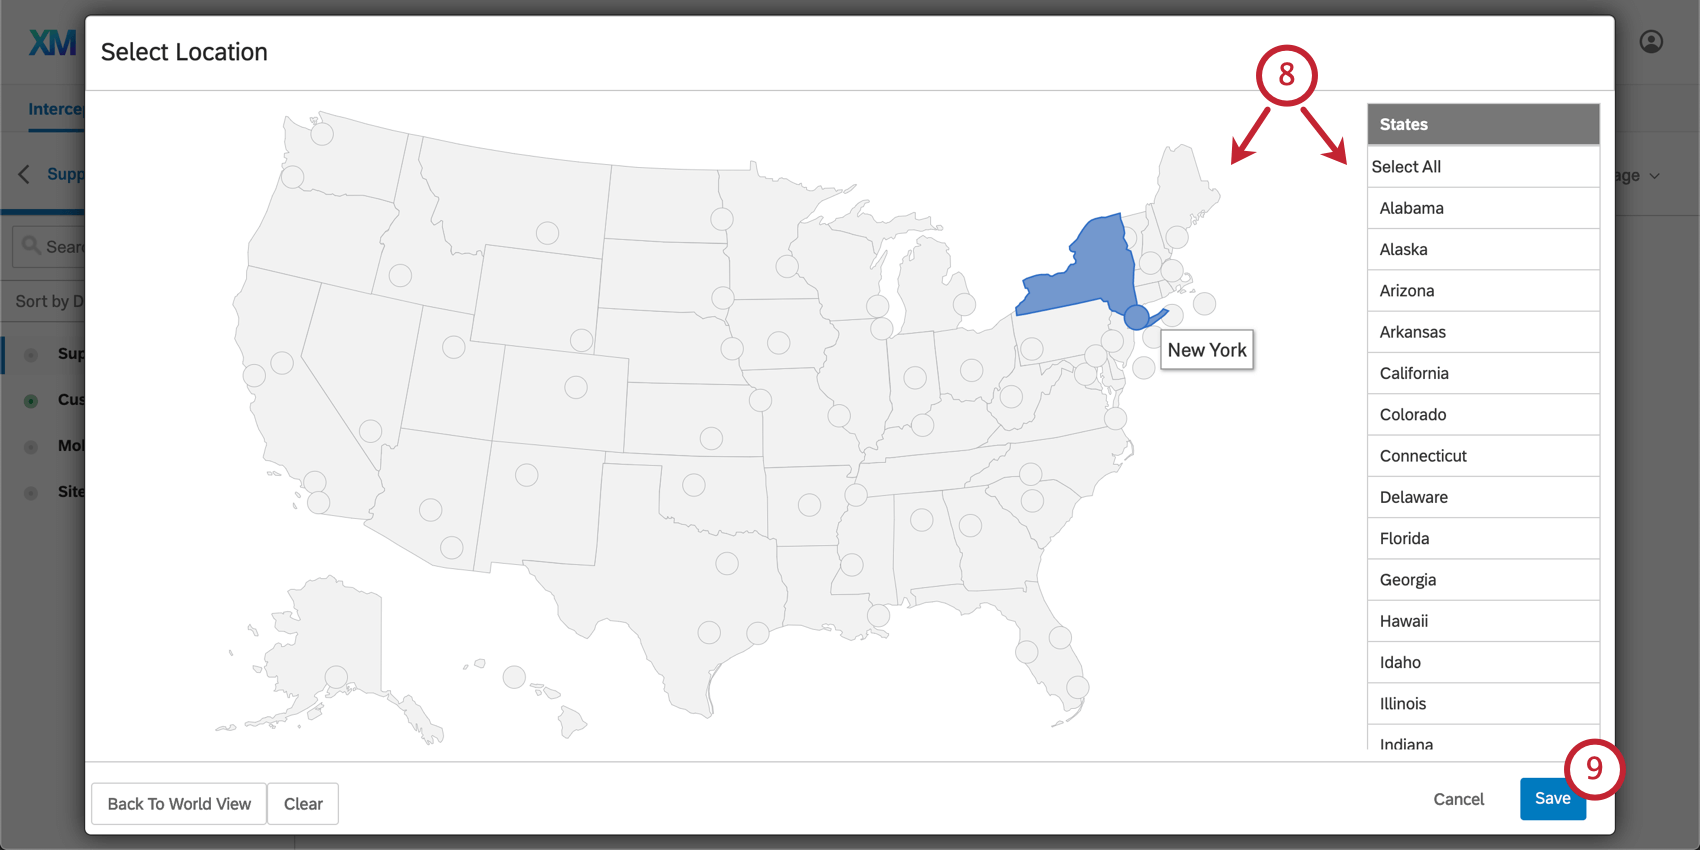 Grey-toned map of the United States with blue Save button on bottom-right